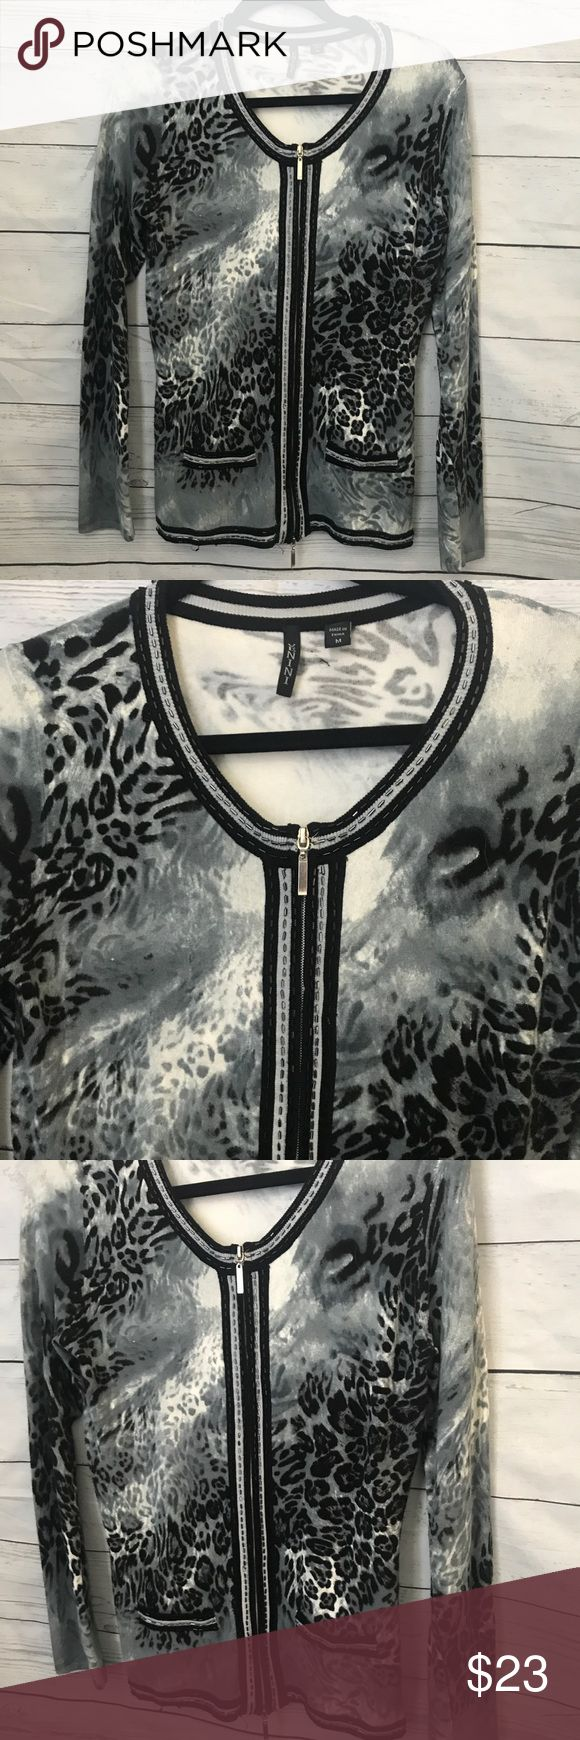 Animal Print Zip Up Sweater Size Medium Black White And Grey In Color Has Two Zippers So You Can It All The Way Or